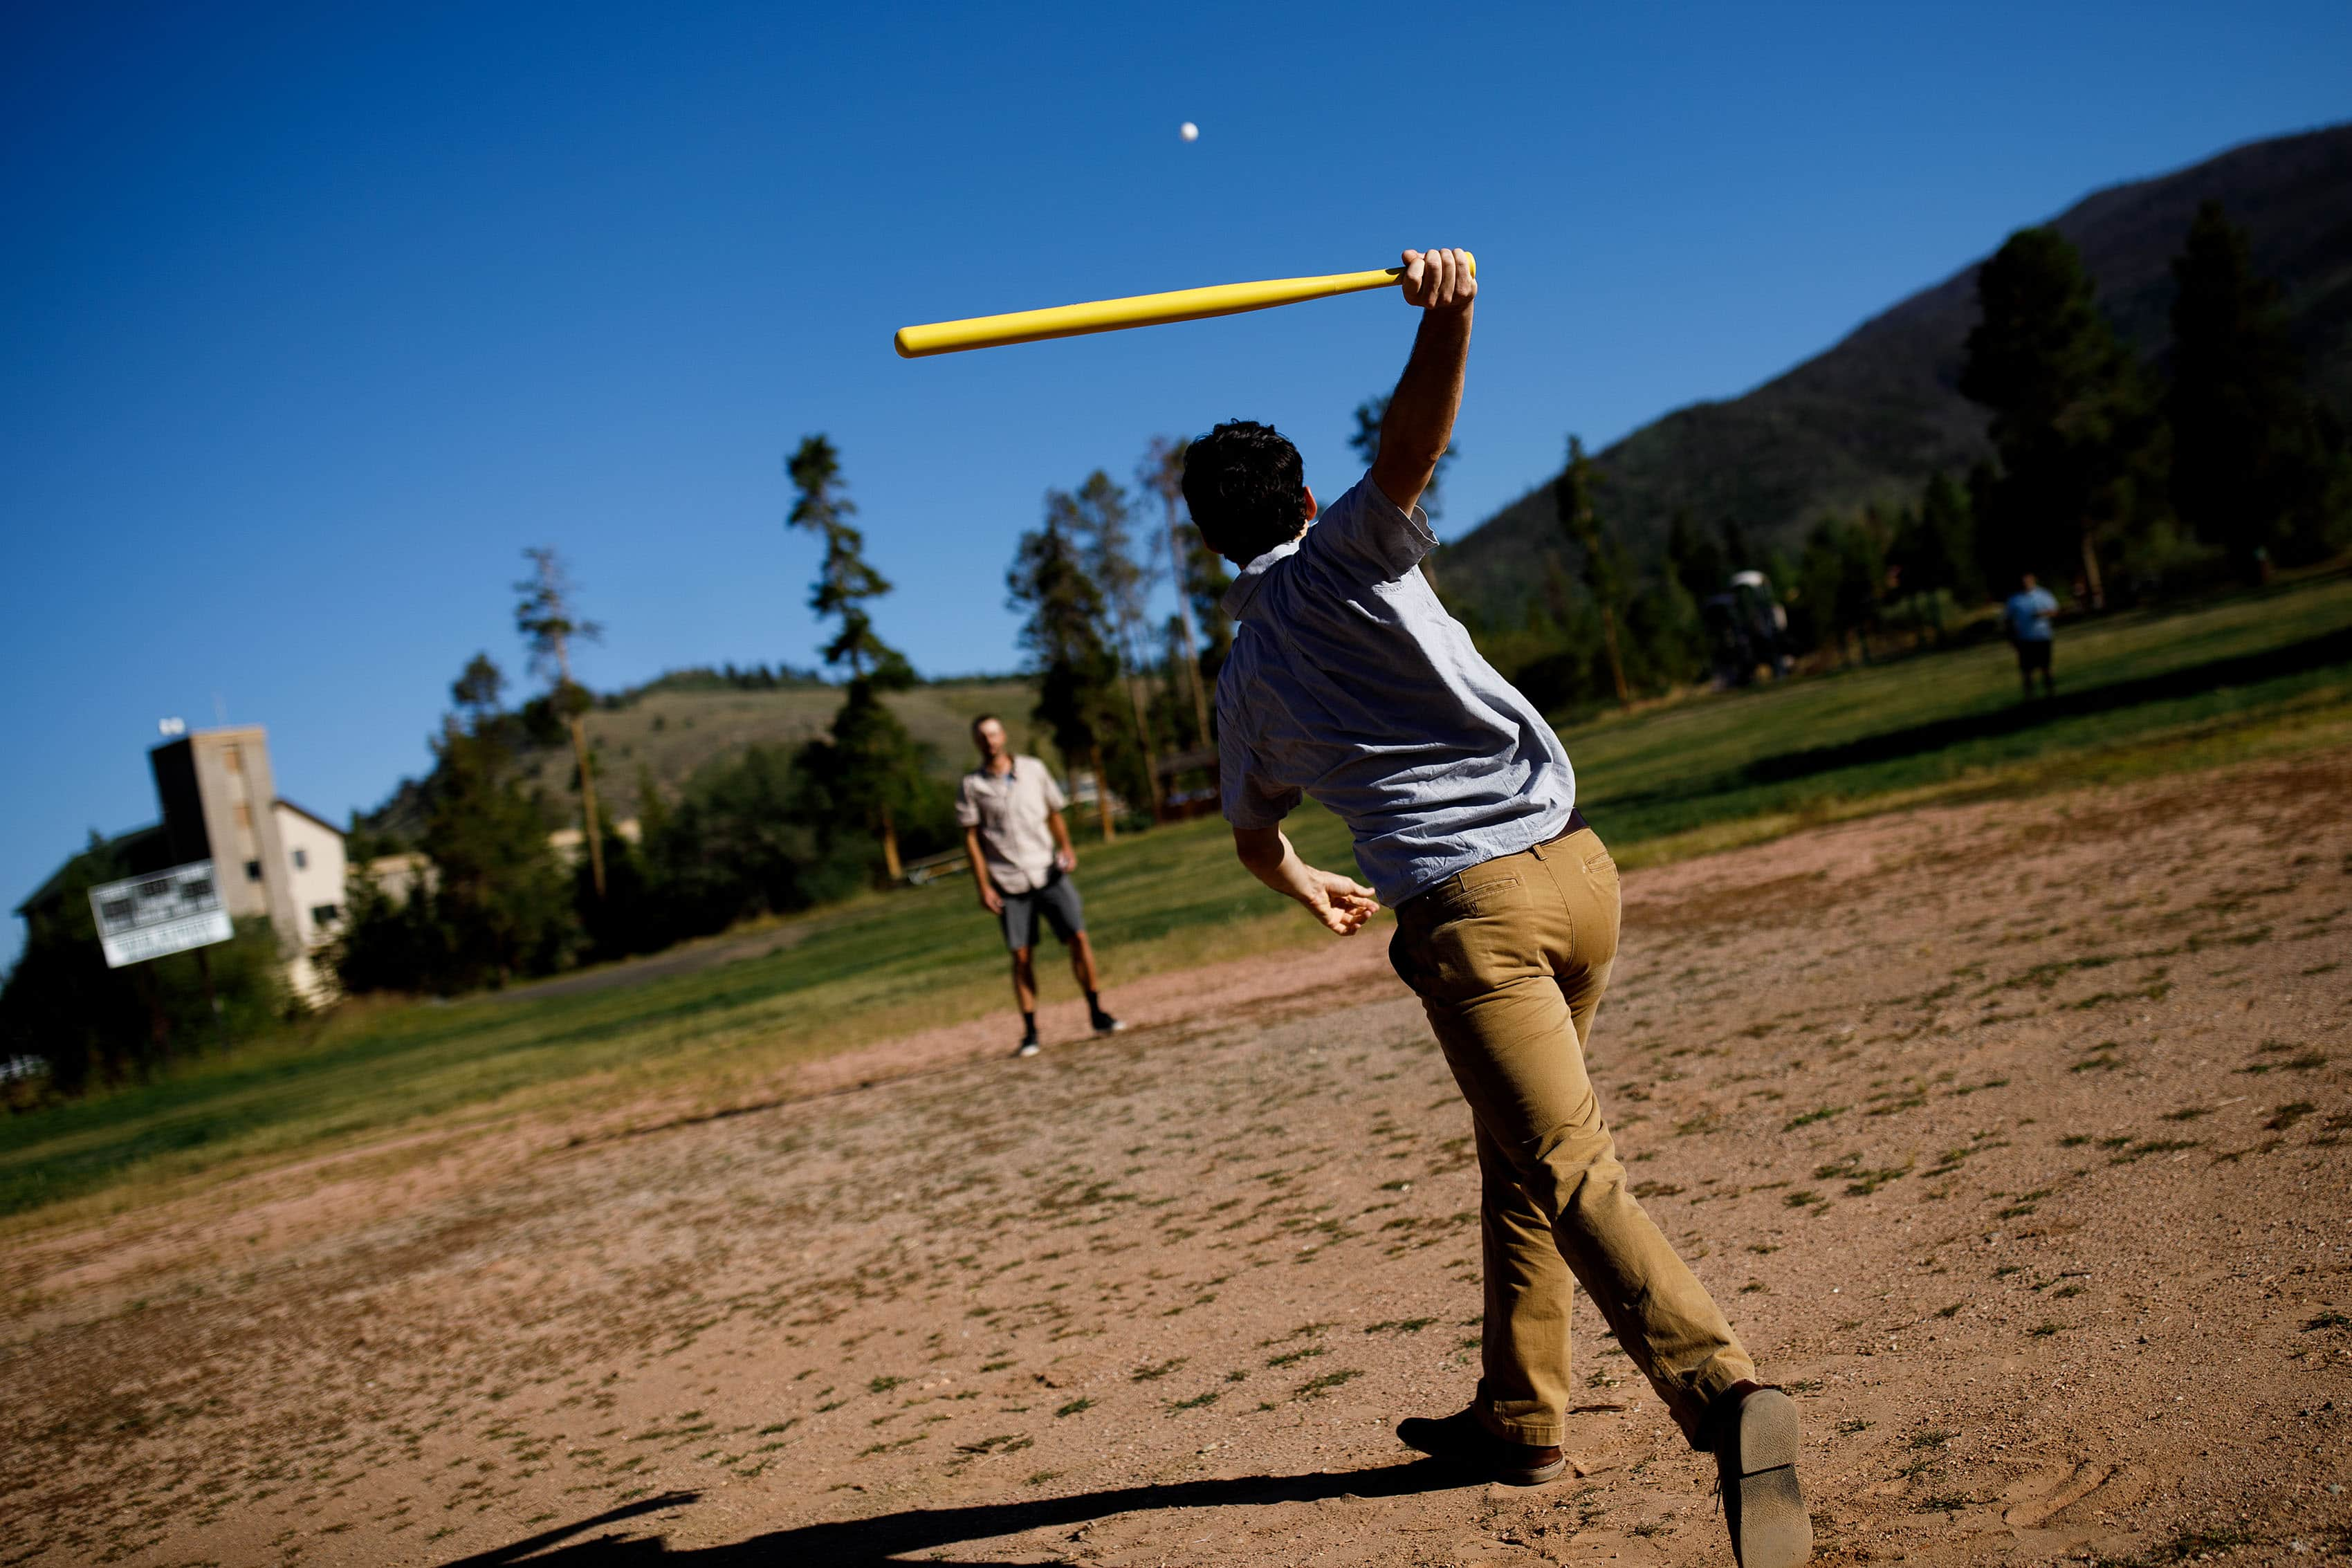 The groom plays wiffle ball with friends in Dillon